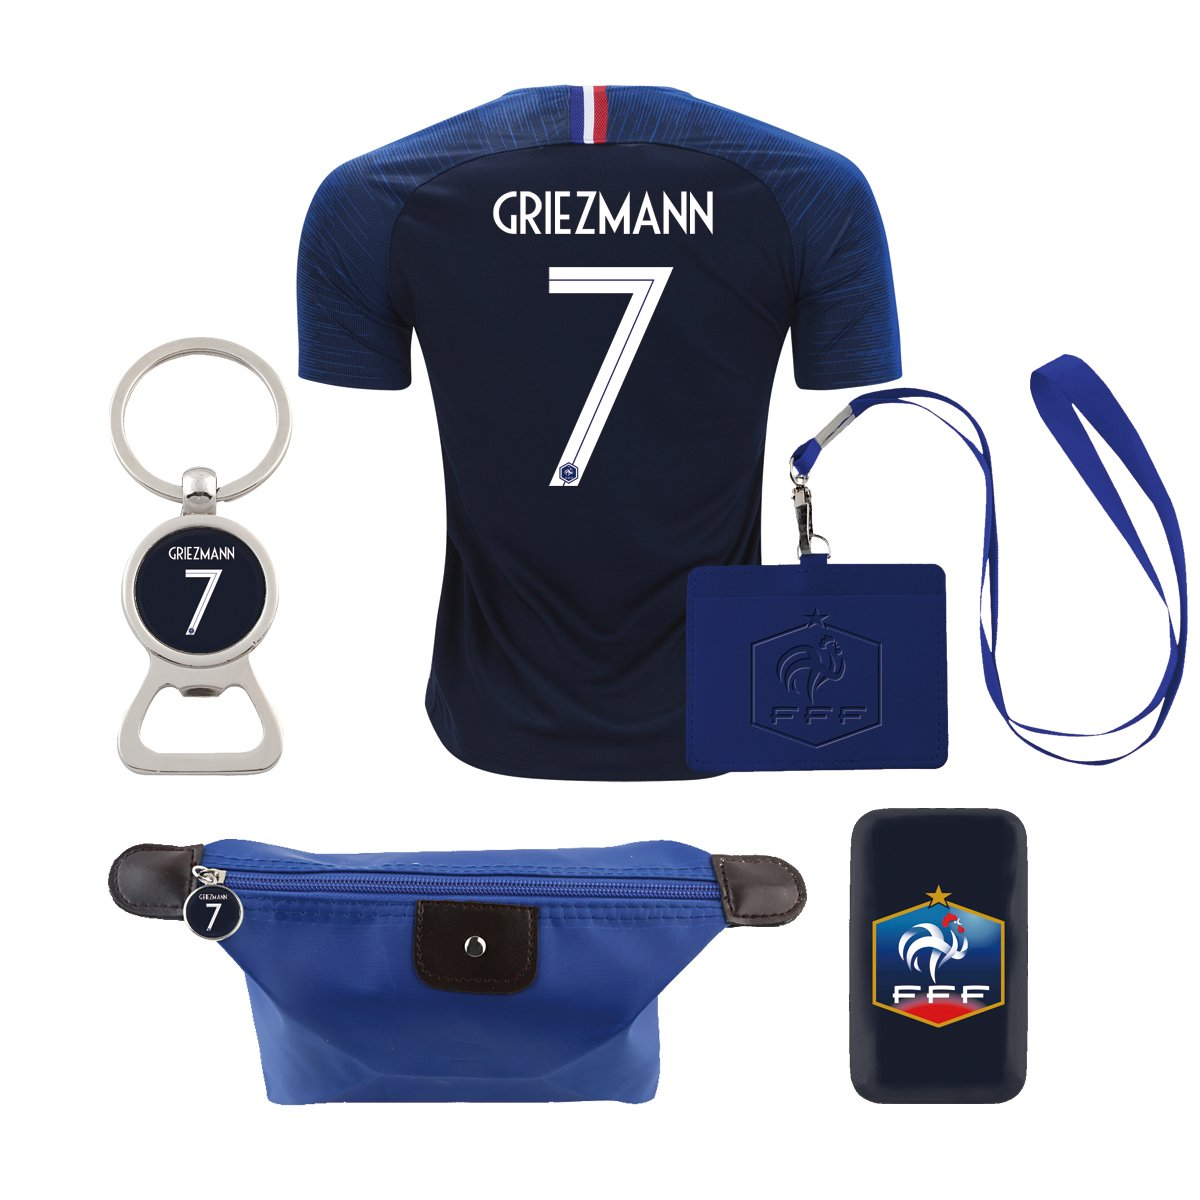 d1ff442c4be Amazon.com  EE bestort France  7 Griezmann 2018 Home Mens Soccer Jersey  Color Blue (Small)  Sports   Outdoors